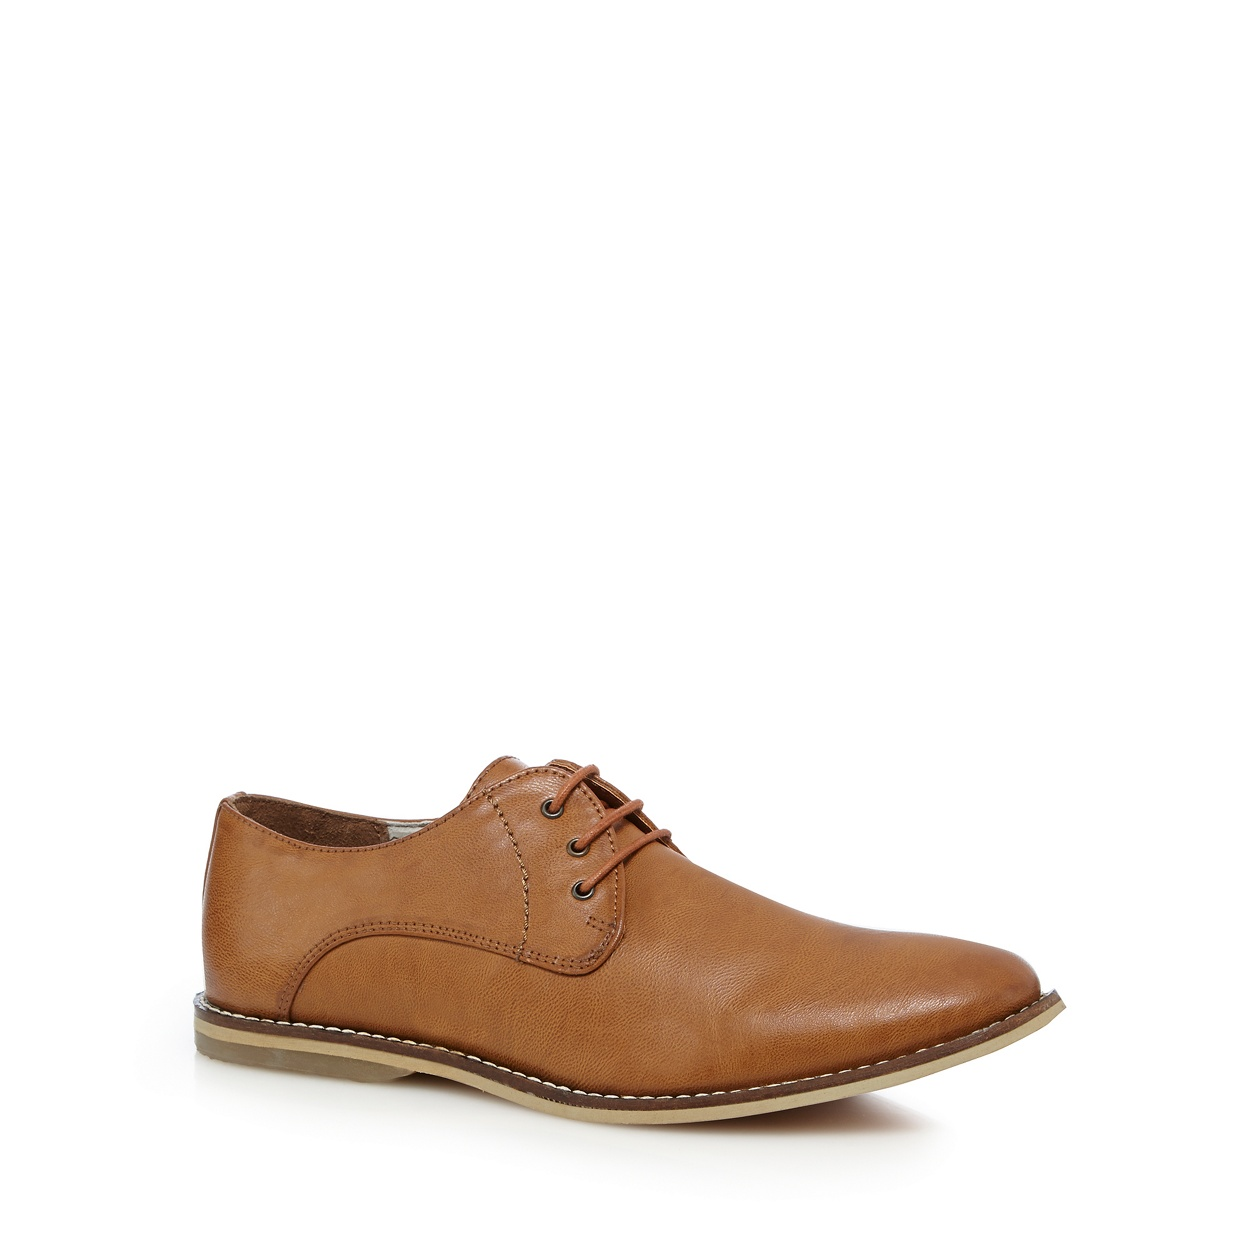 Mens black leather gloves debenhams - Red Herring Tan Lace Up Shoes